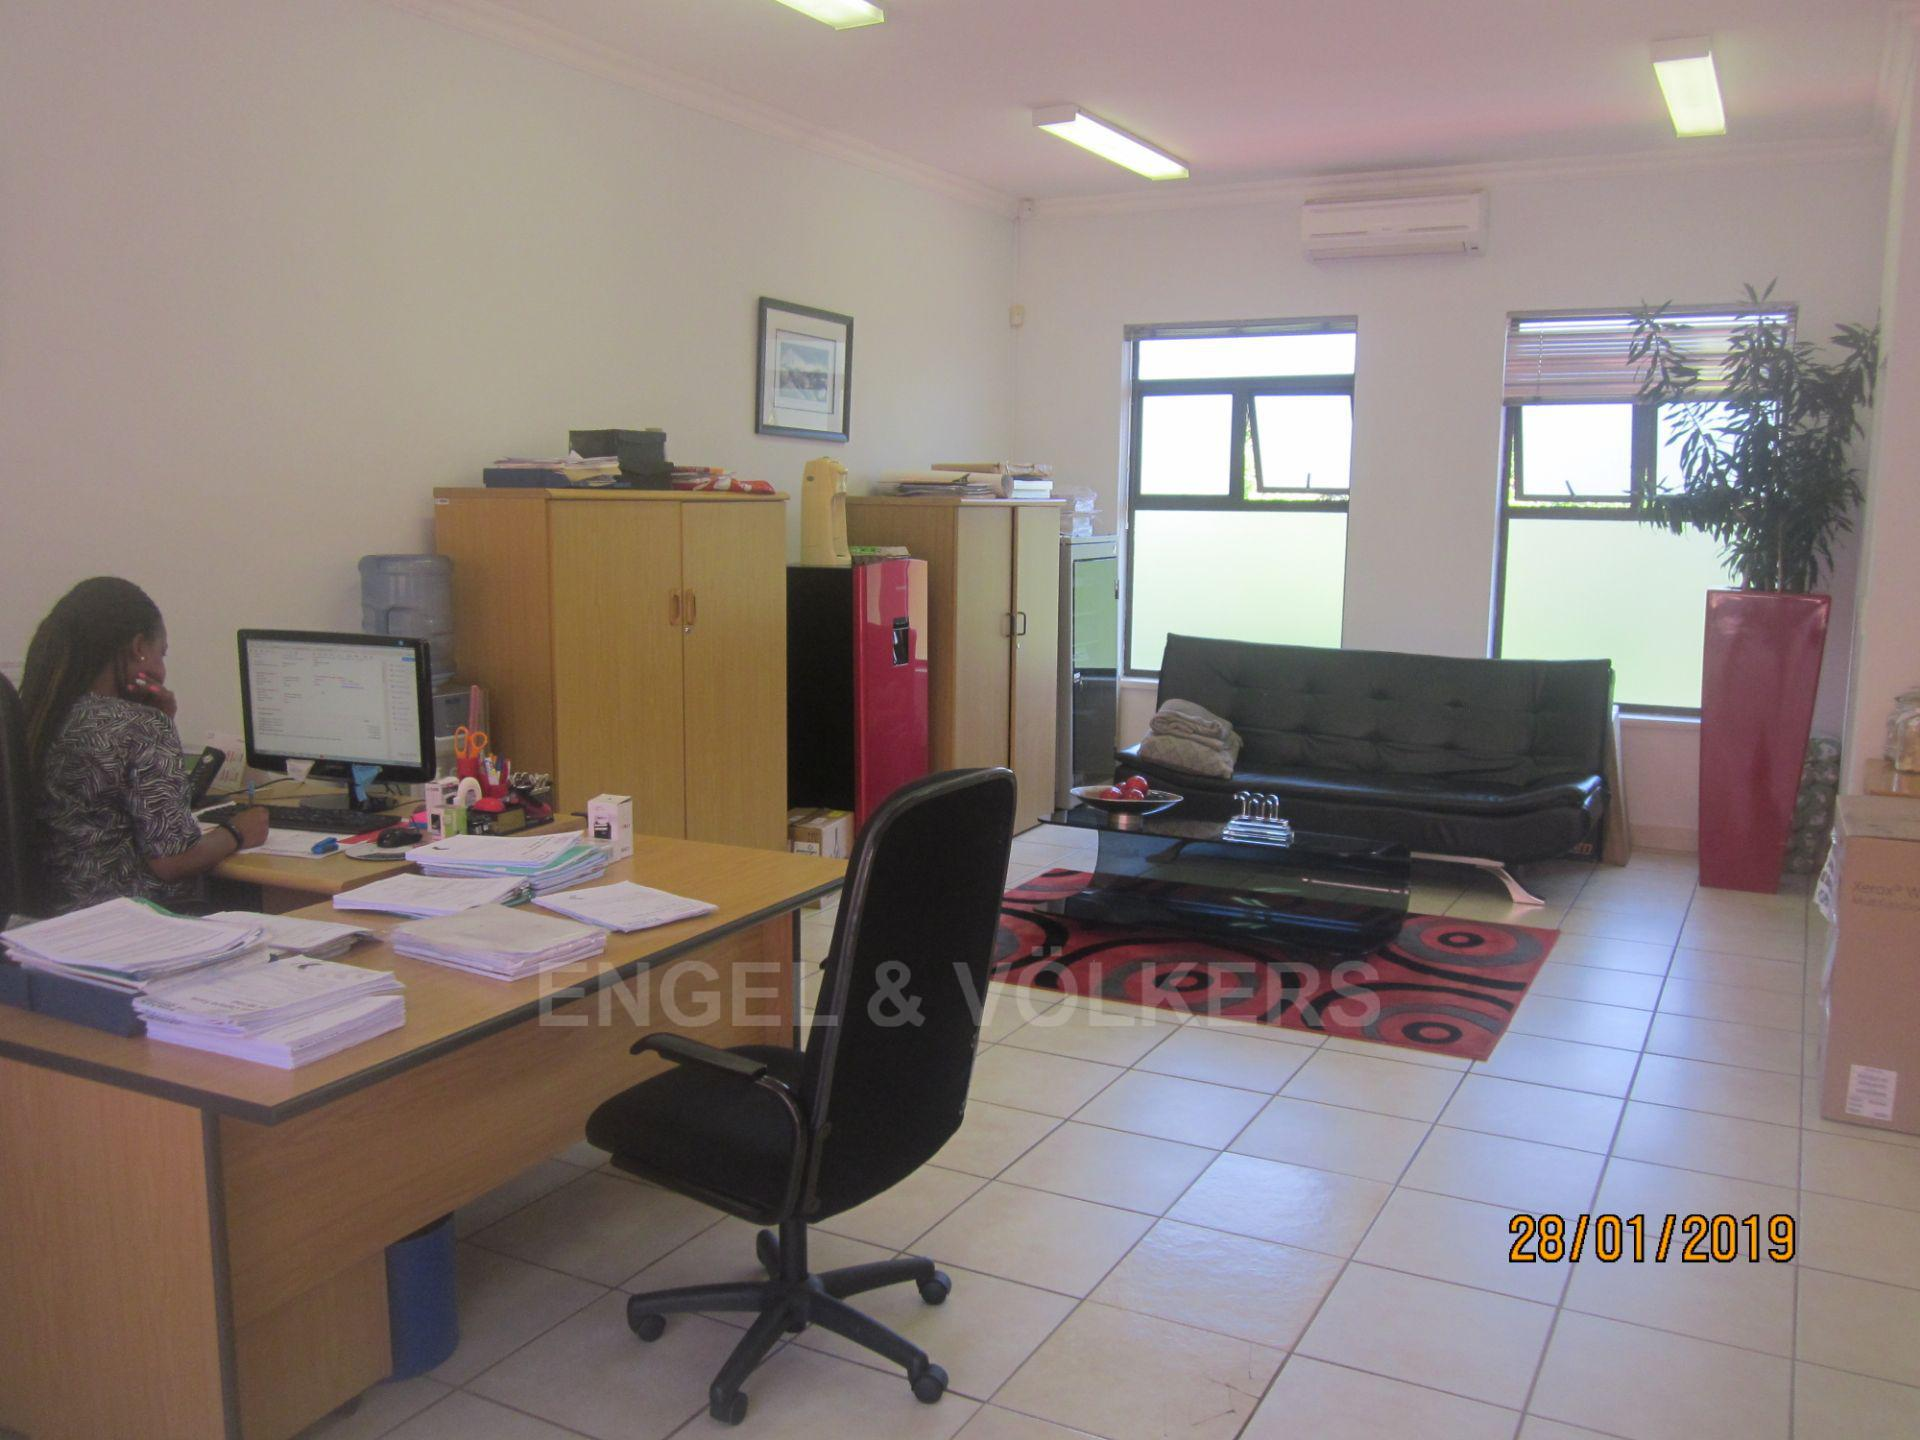 Investment / Residential investment in Shelly Beach - 003 Office interior.JPG